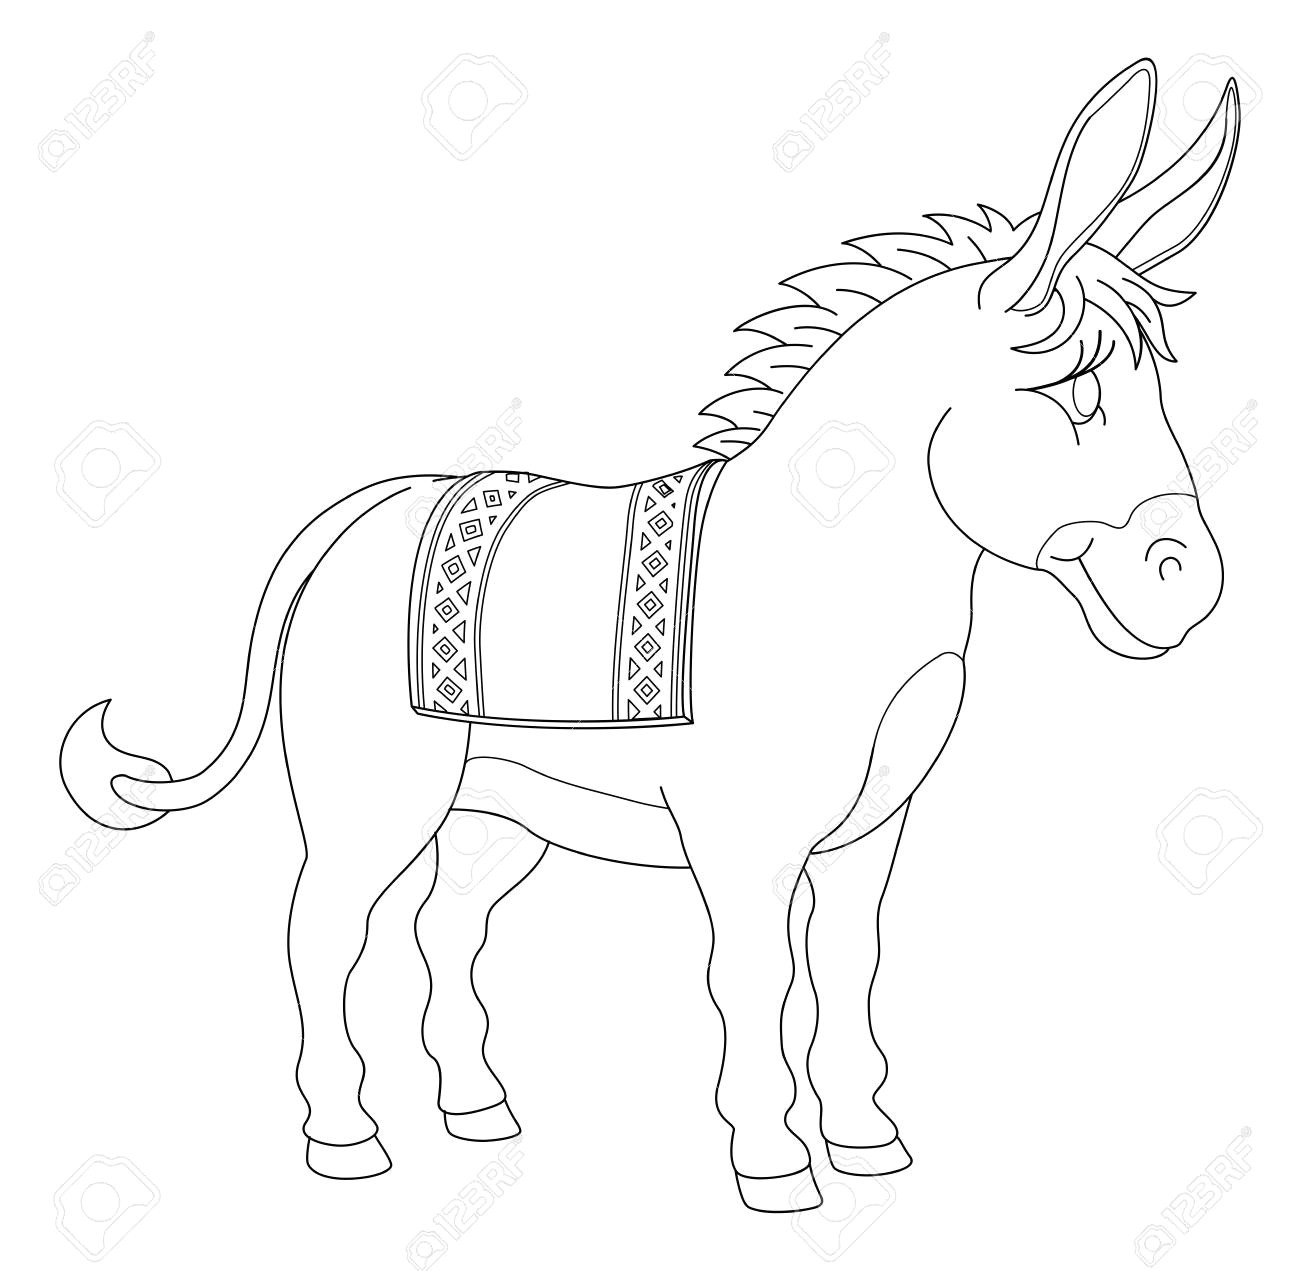 a donkey animal cute cartoon character black and white coloring illustration stock vector 112752801